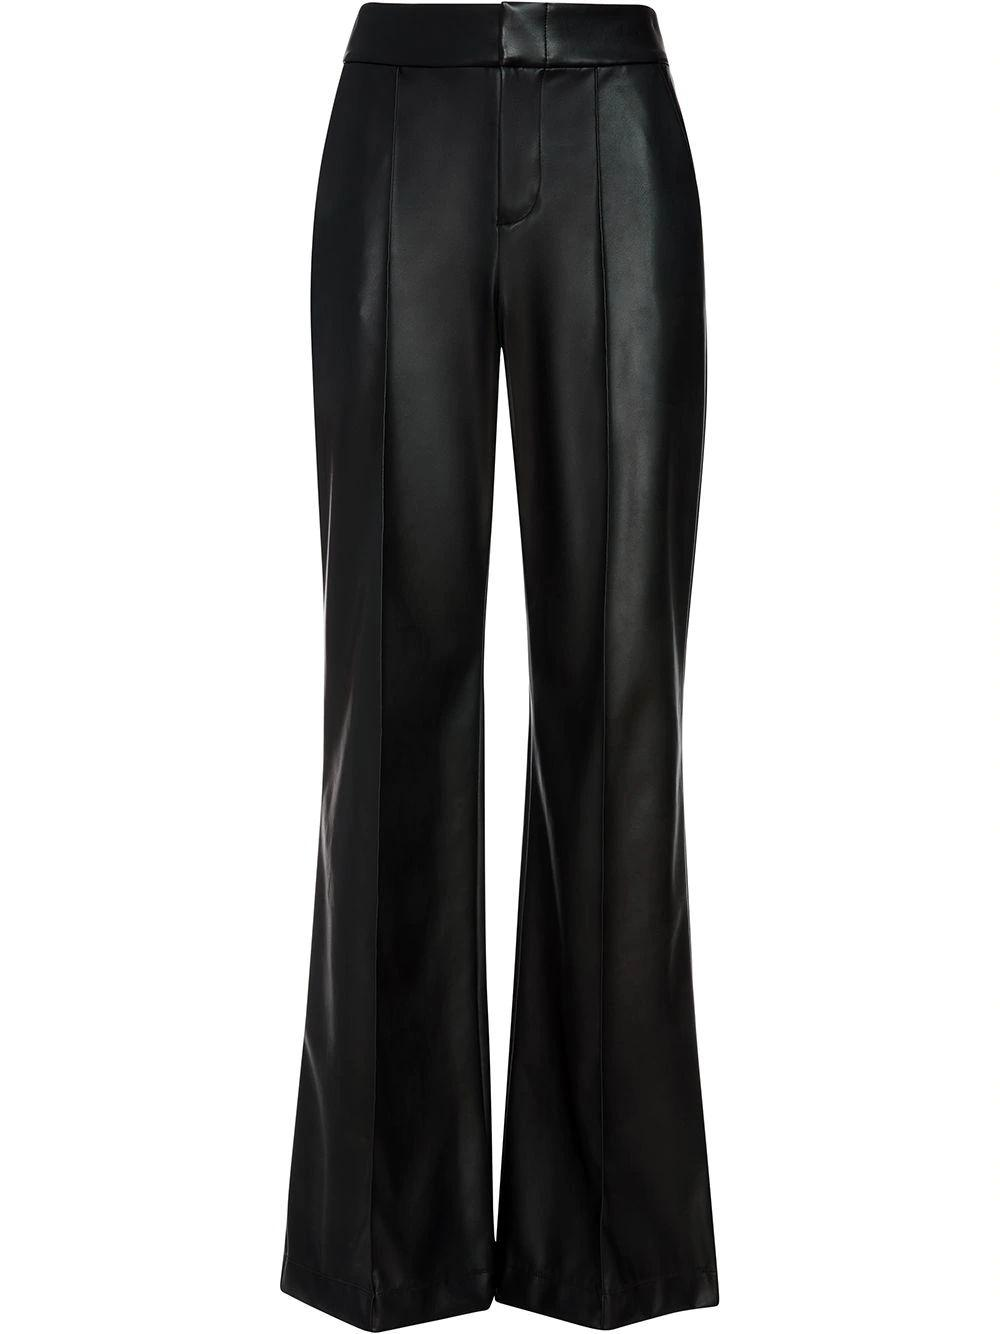 Dylan Vegan Leather Pant